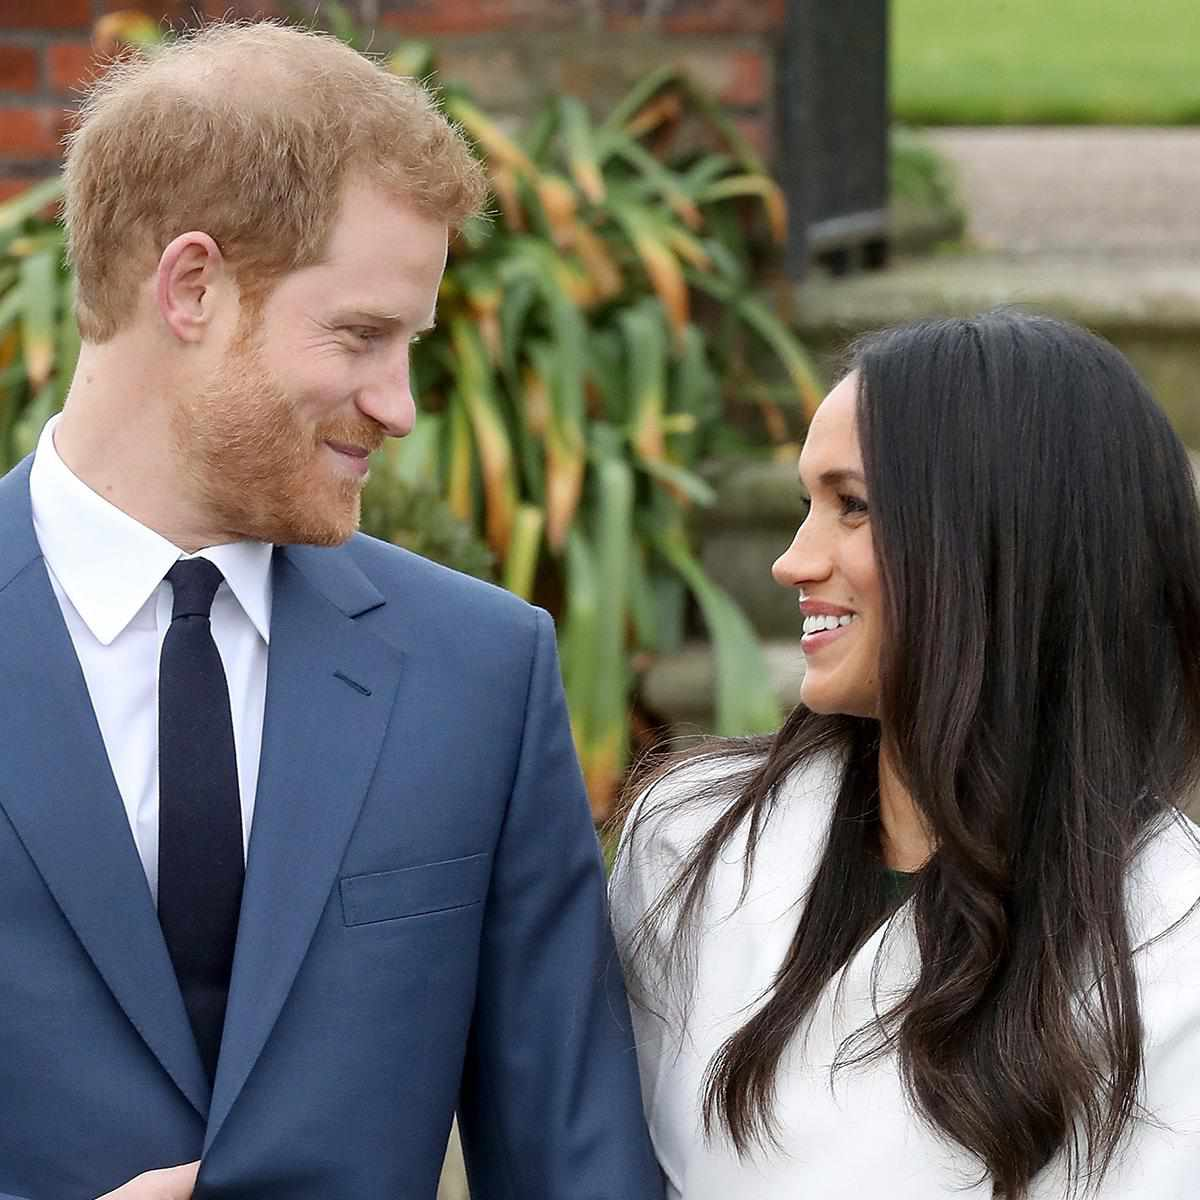 Who Pays For The Royal Wedding.Everything We Know About The Royal Wedding So Far